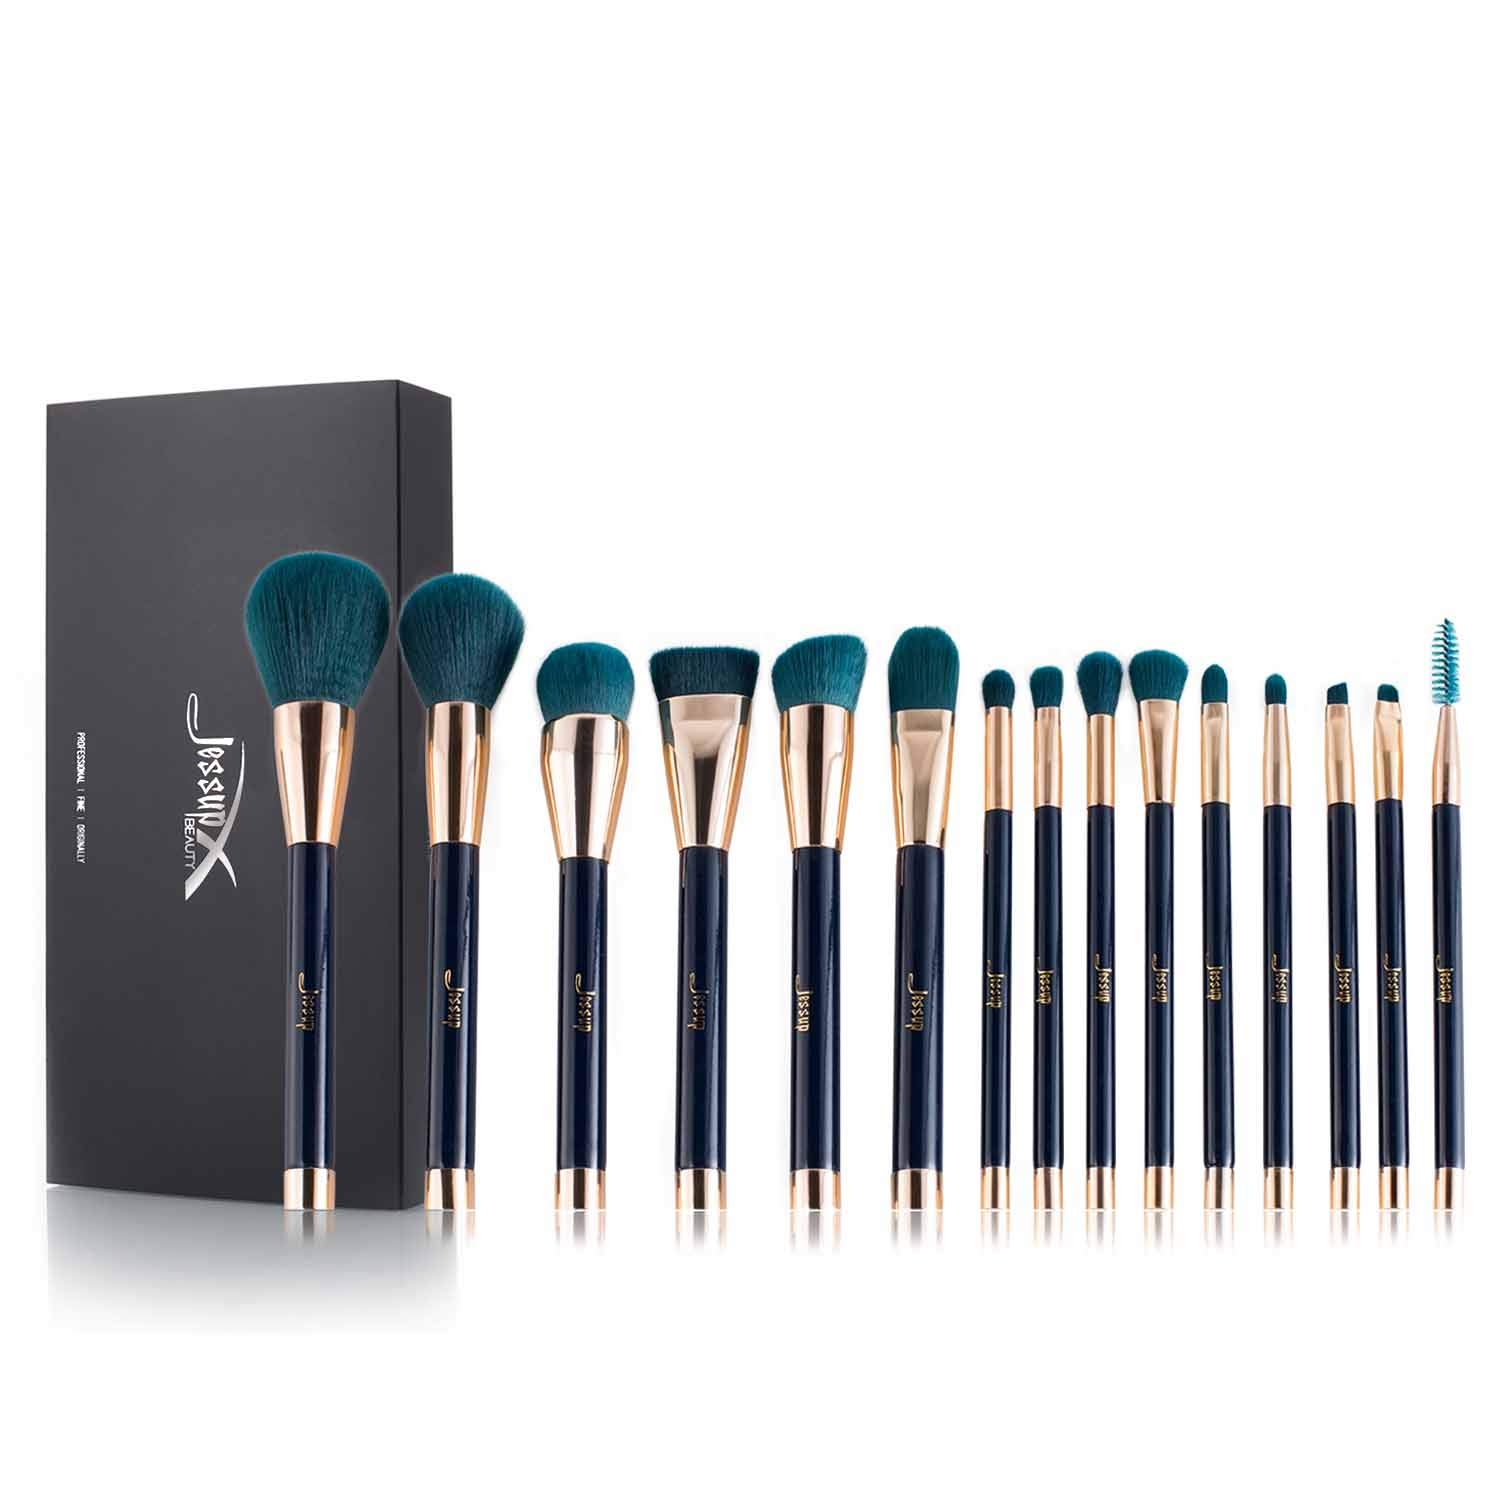 Jessup 15pcs Makeup Brushes Set Powder Foundation Eyeshadow Eyeliner Lip Contour Concealer Smudge Brush Tool Blue/Darkgreen T113